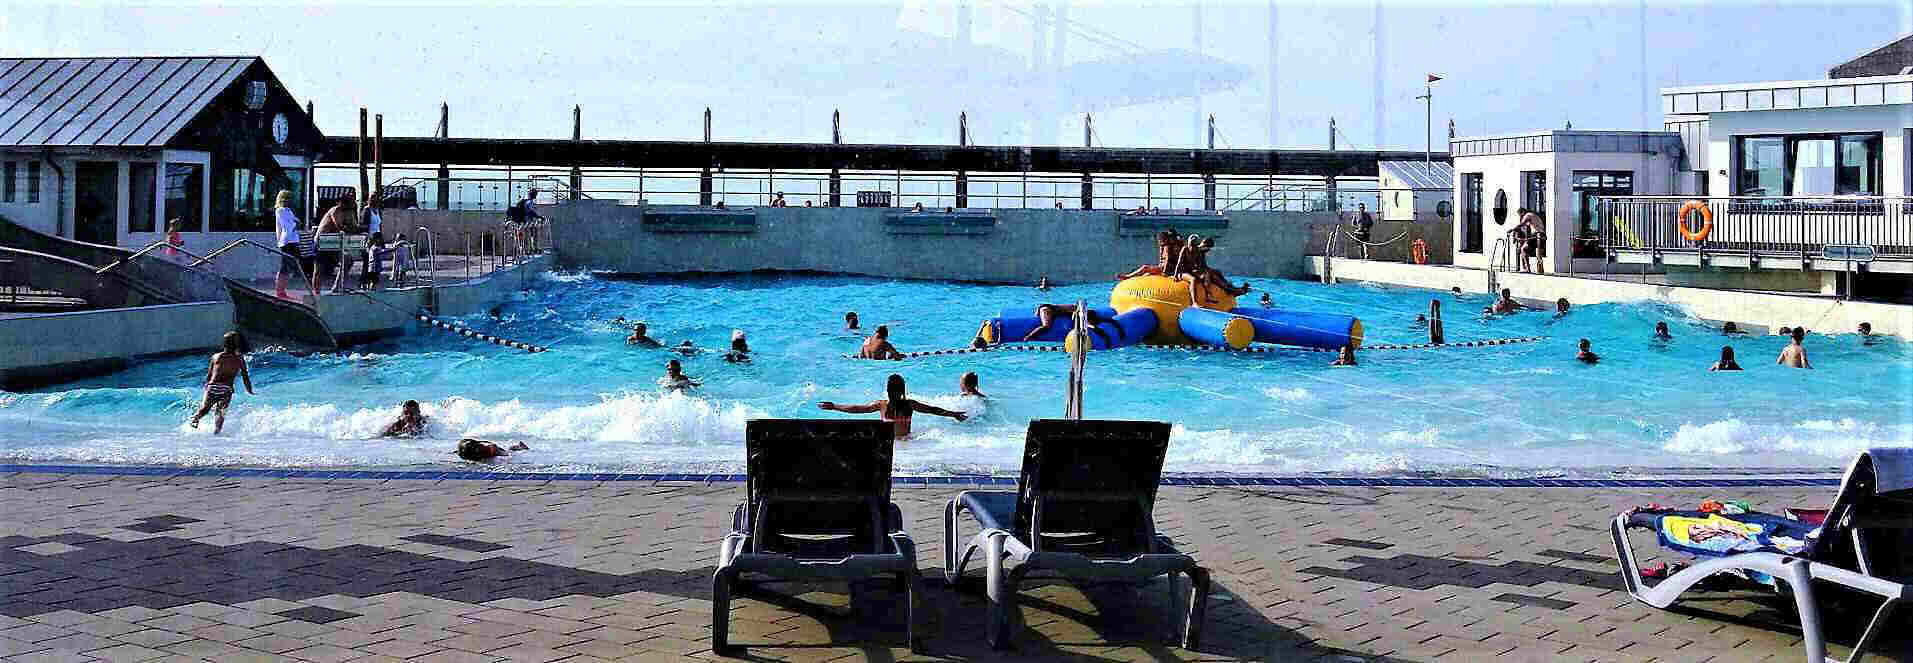 Das Wellenfreibad - Watt'n-Bad in Dorum-Neufeld